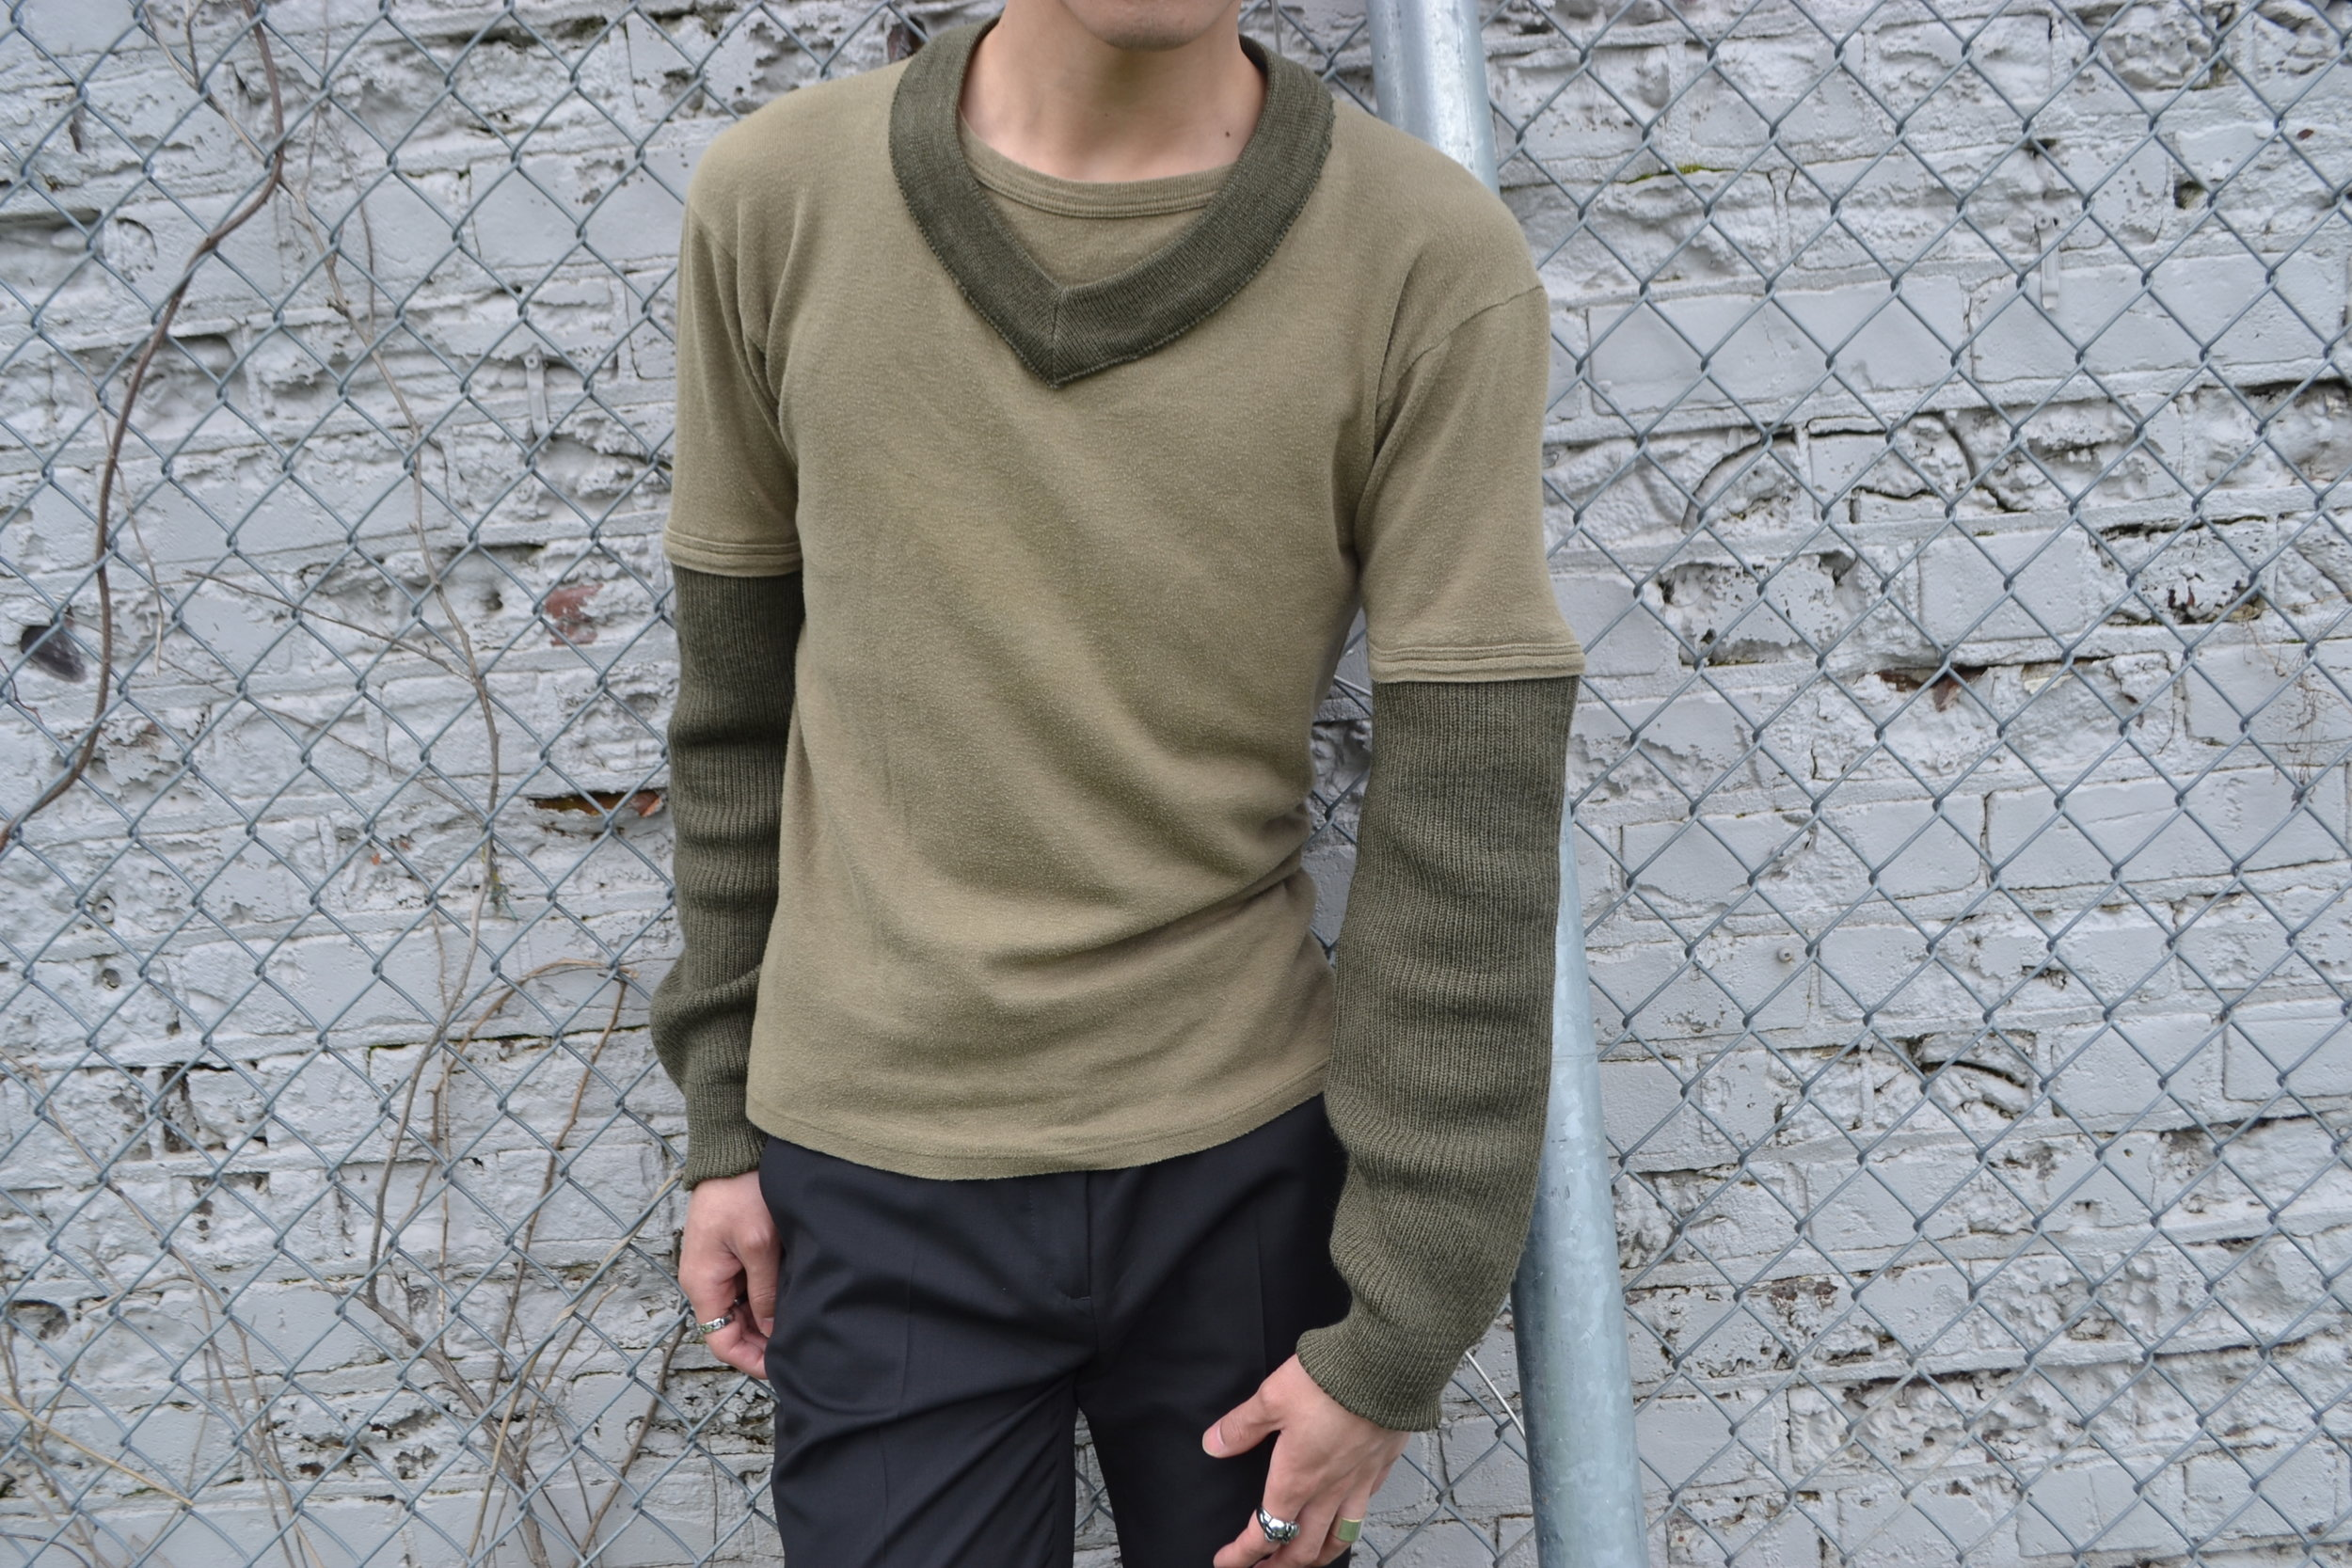 FEATURED: Maison Martin Margiela Cotton T-Shirt with Military Sweater Patchwork (SS03)